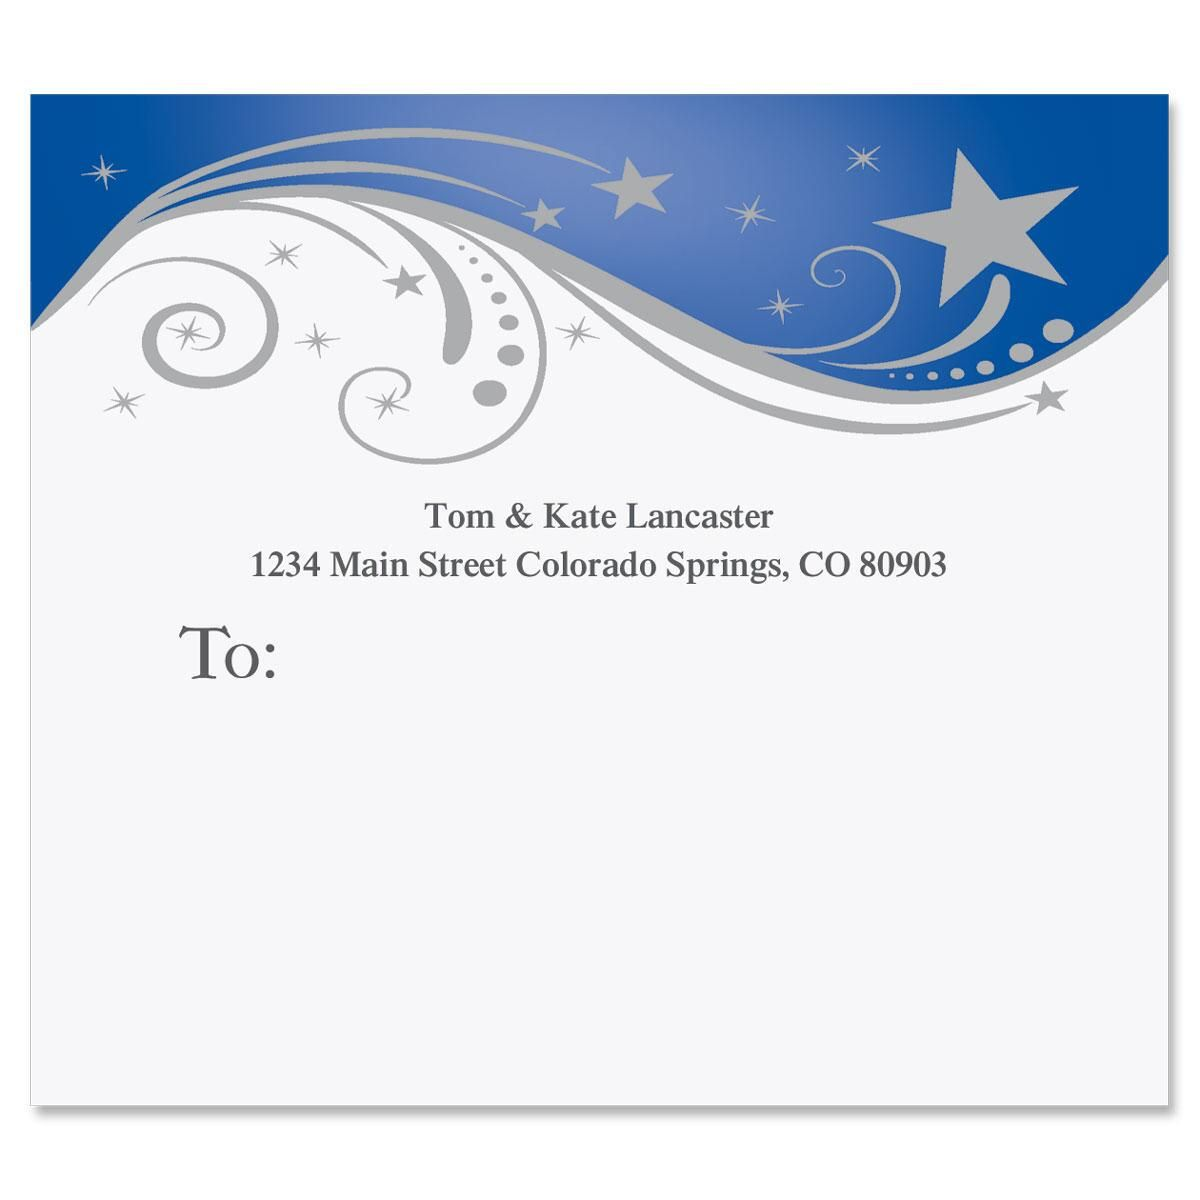 Splendid Star Mailing Package Label